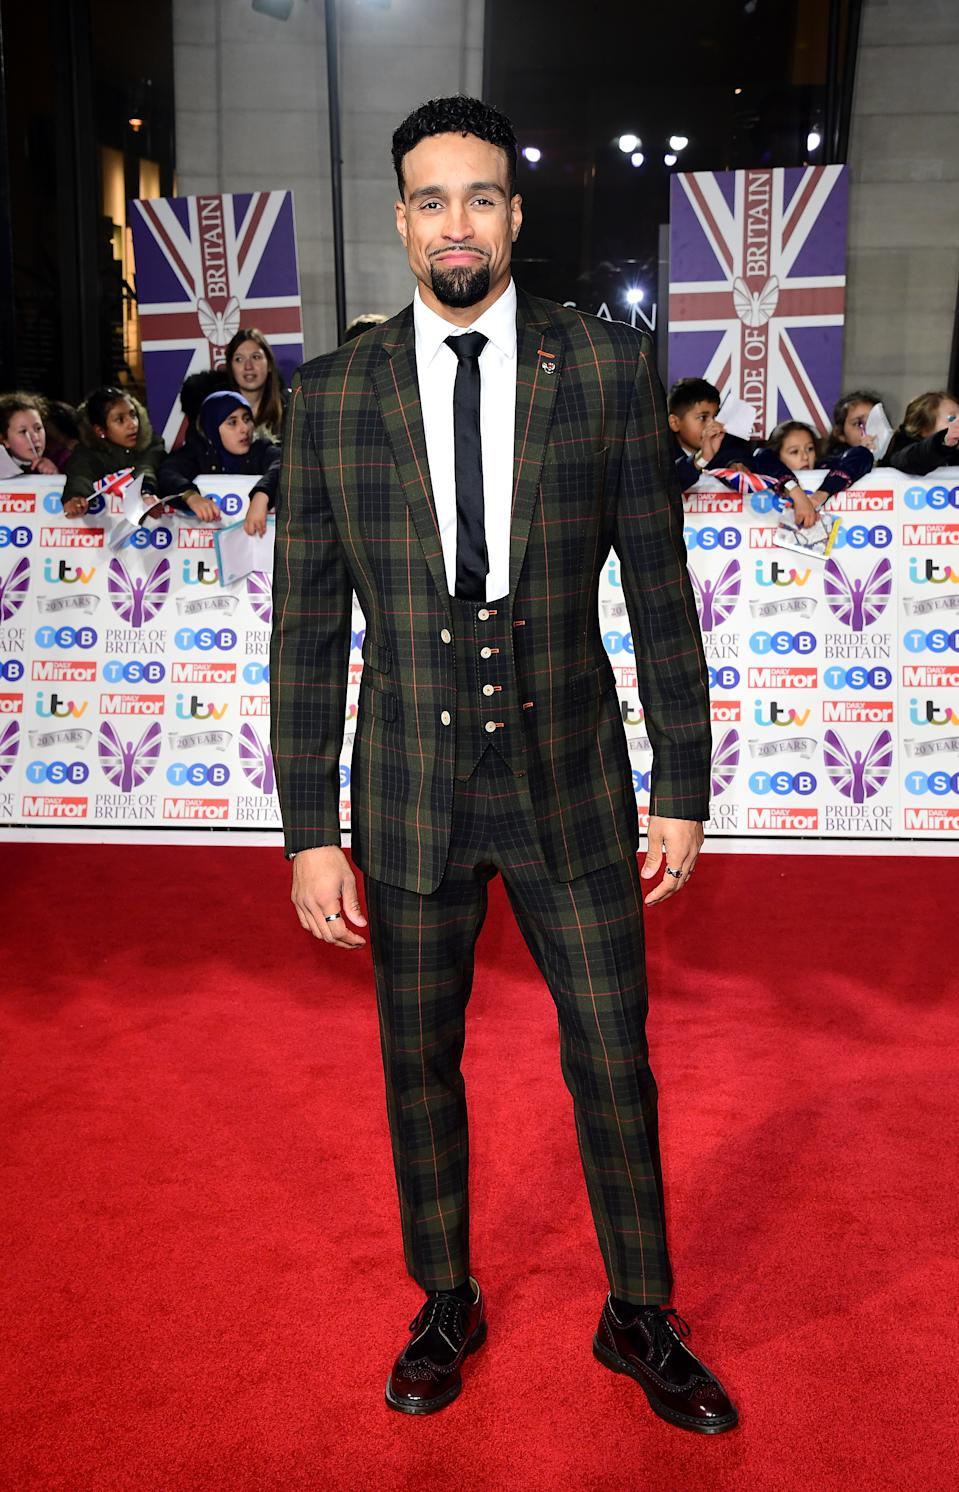 Ashley Banjo arriving for the Pride of Britain Awards held at the The Grosvenor House Hotel, London. (Photo by Ian West/PA Images via Getty Images)